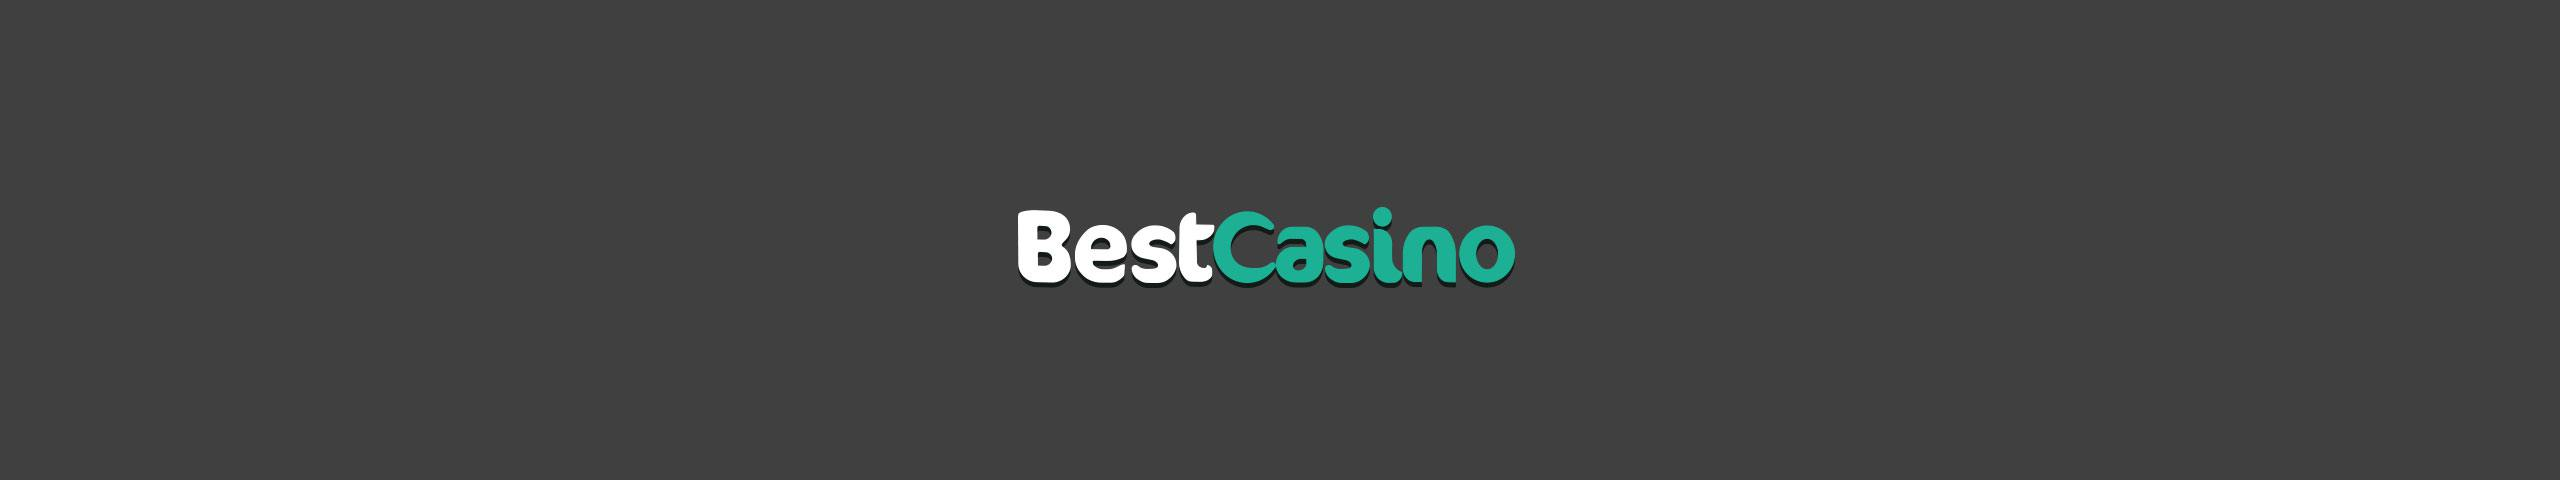 Best Casinoonline casino slider wyrmspel